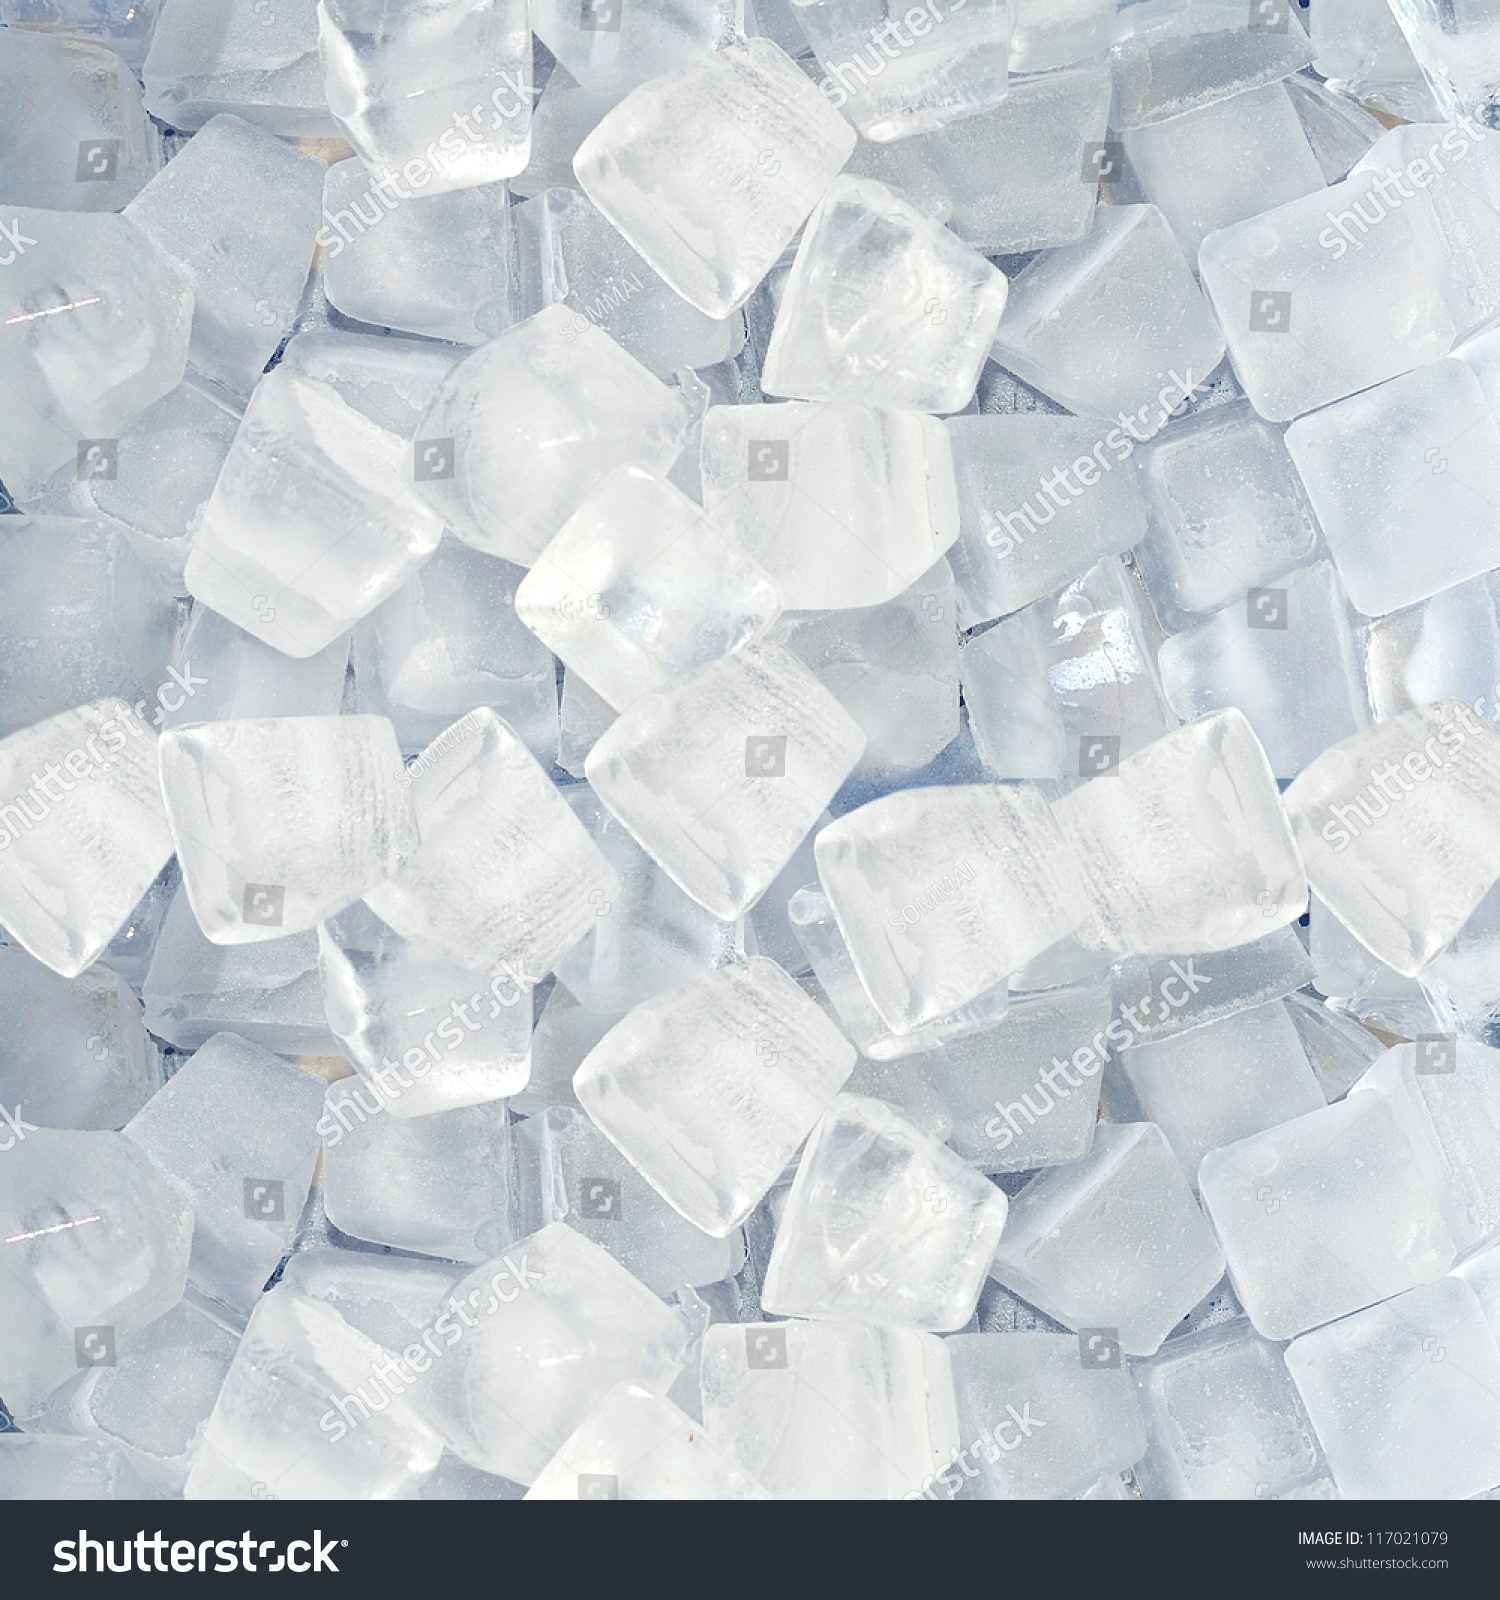 Background Ice Cubes Stock Photo 117021079 - Shutterstock